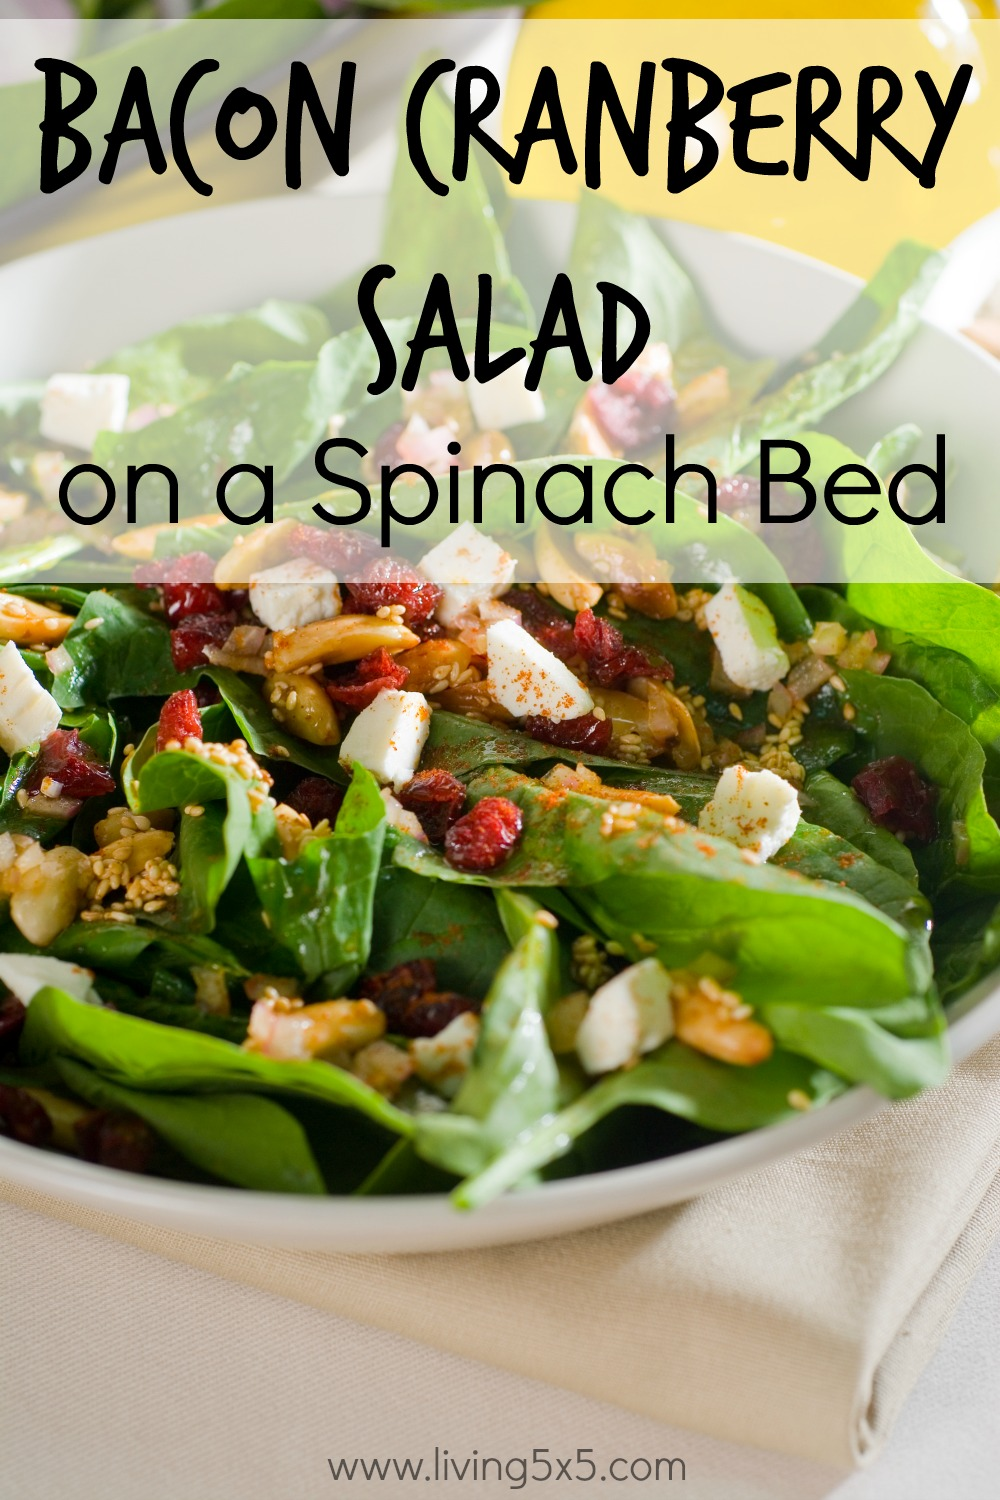 Looking for a sweet and savory salad? Try this Bacon Cranberry Salad on a Spinach Bed!